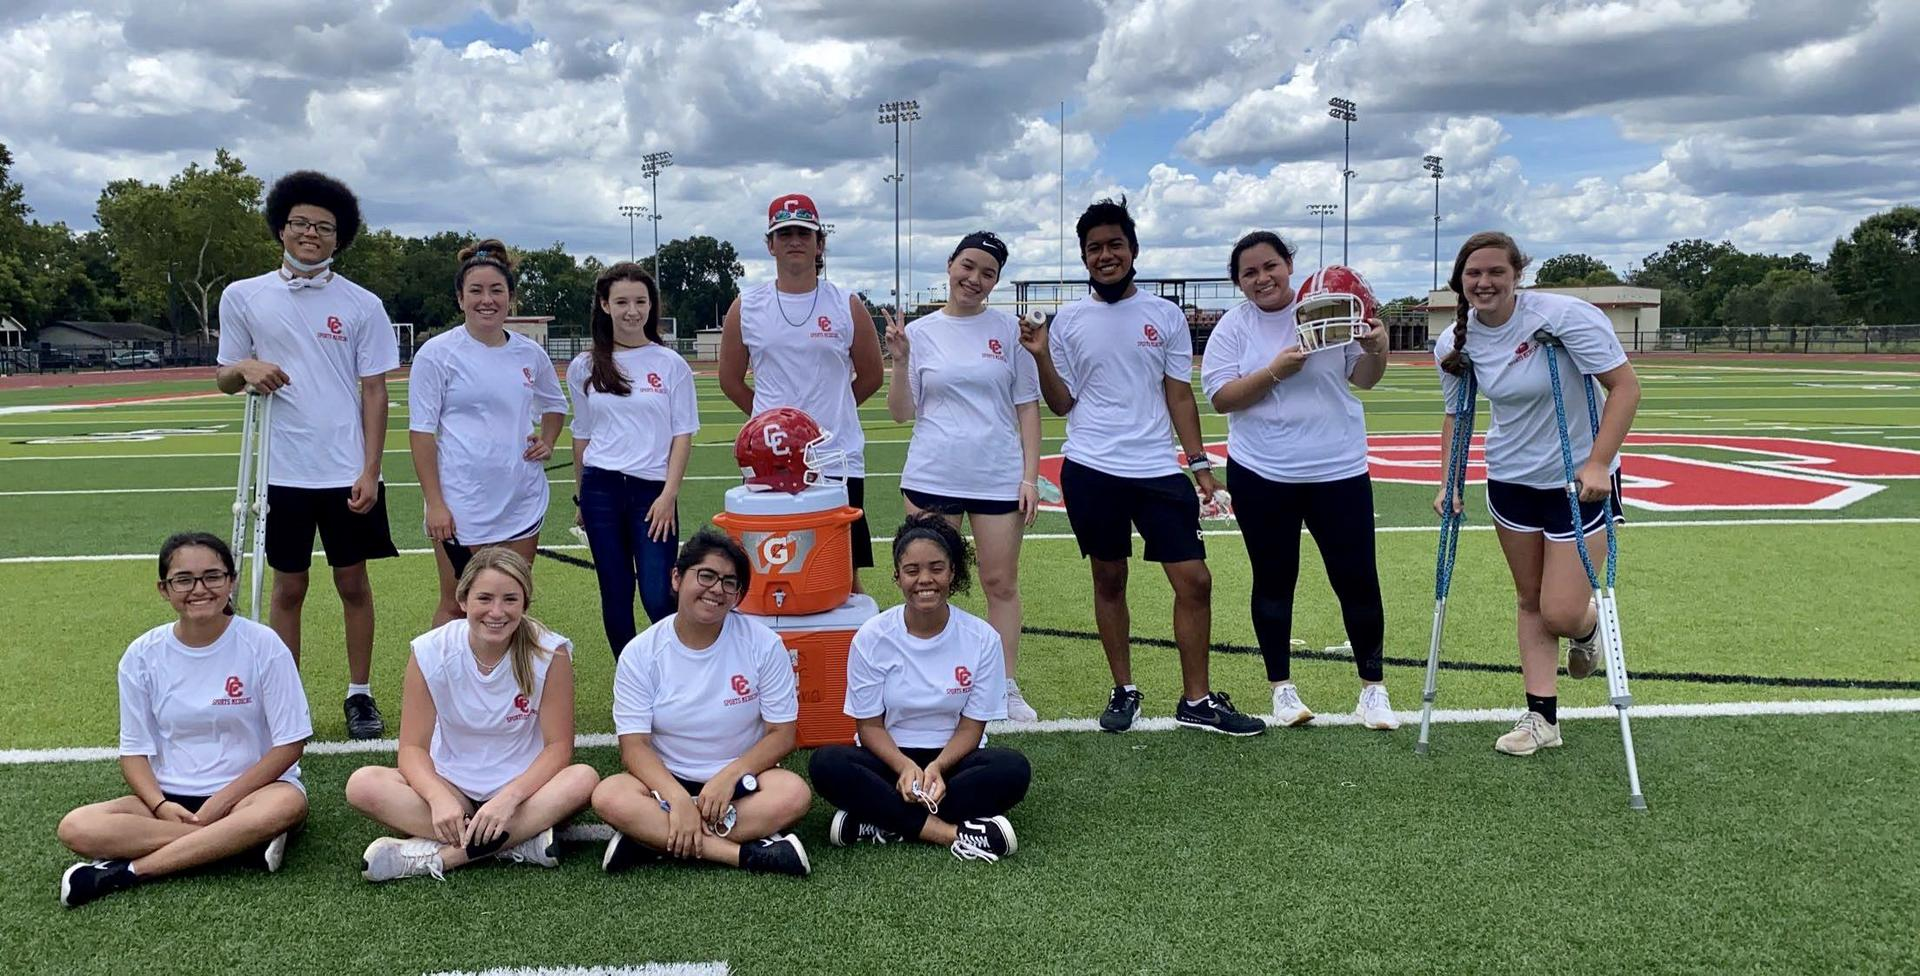 2020-2021 Student Athletic Trainers